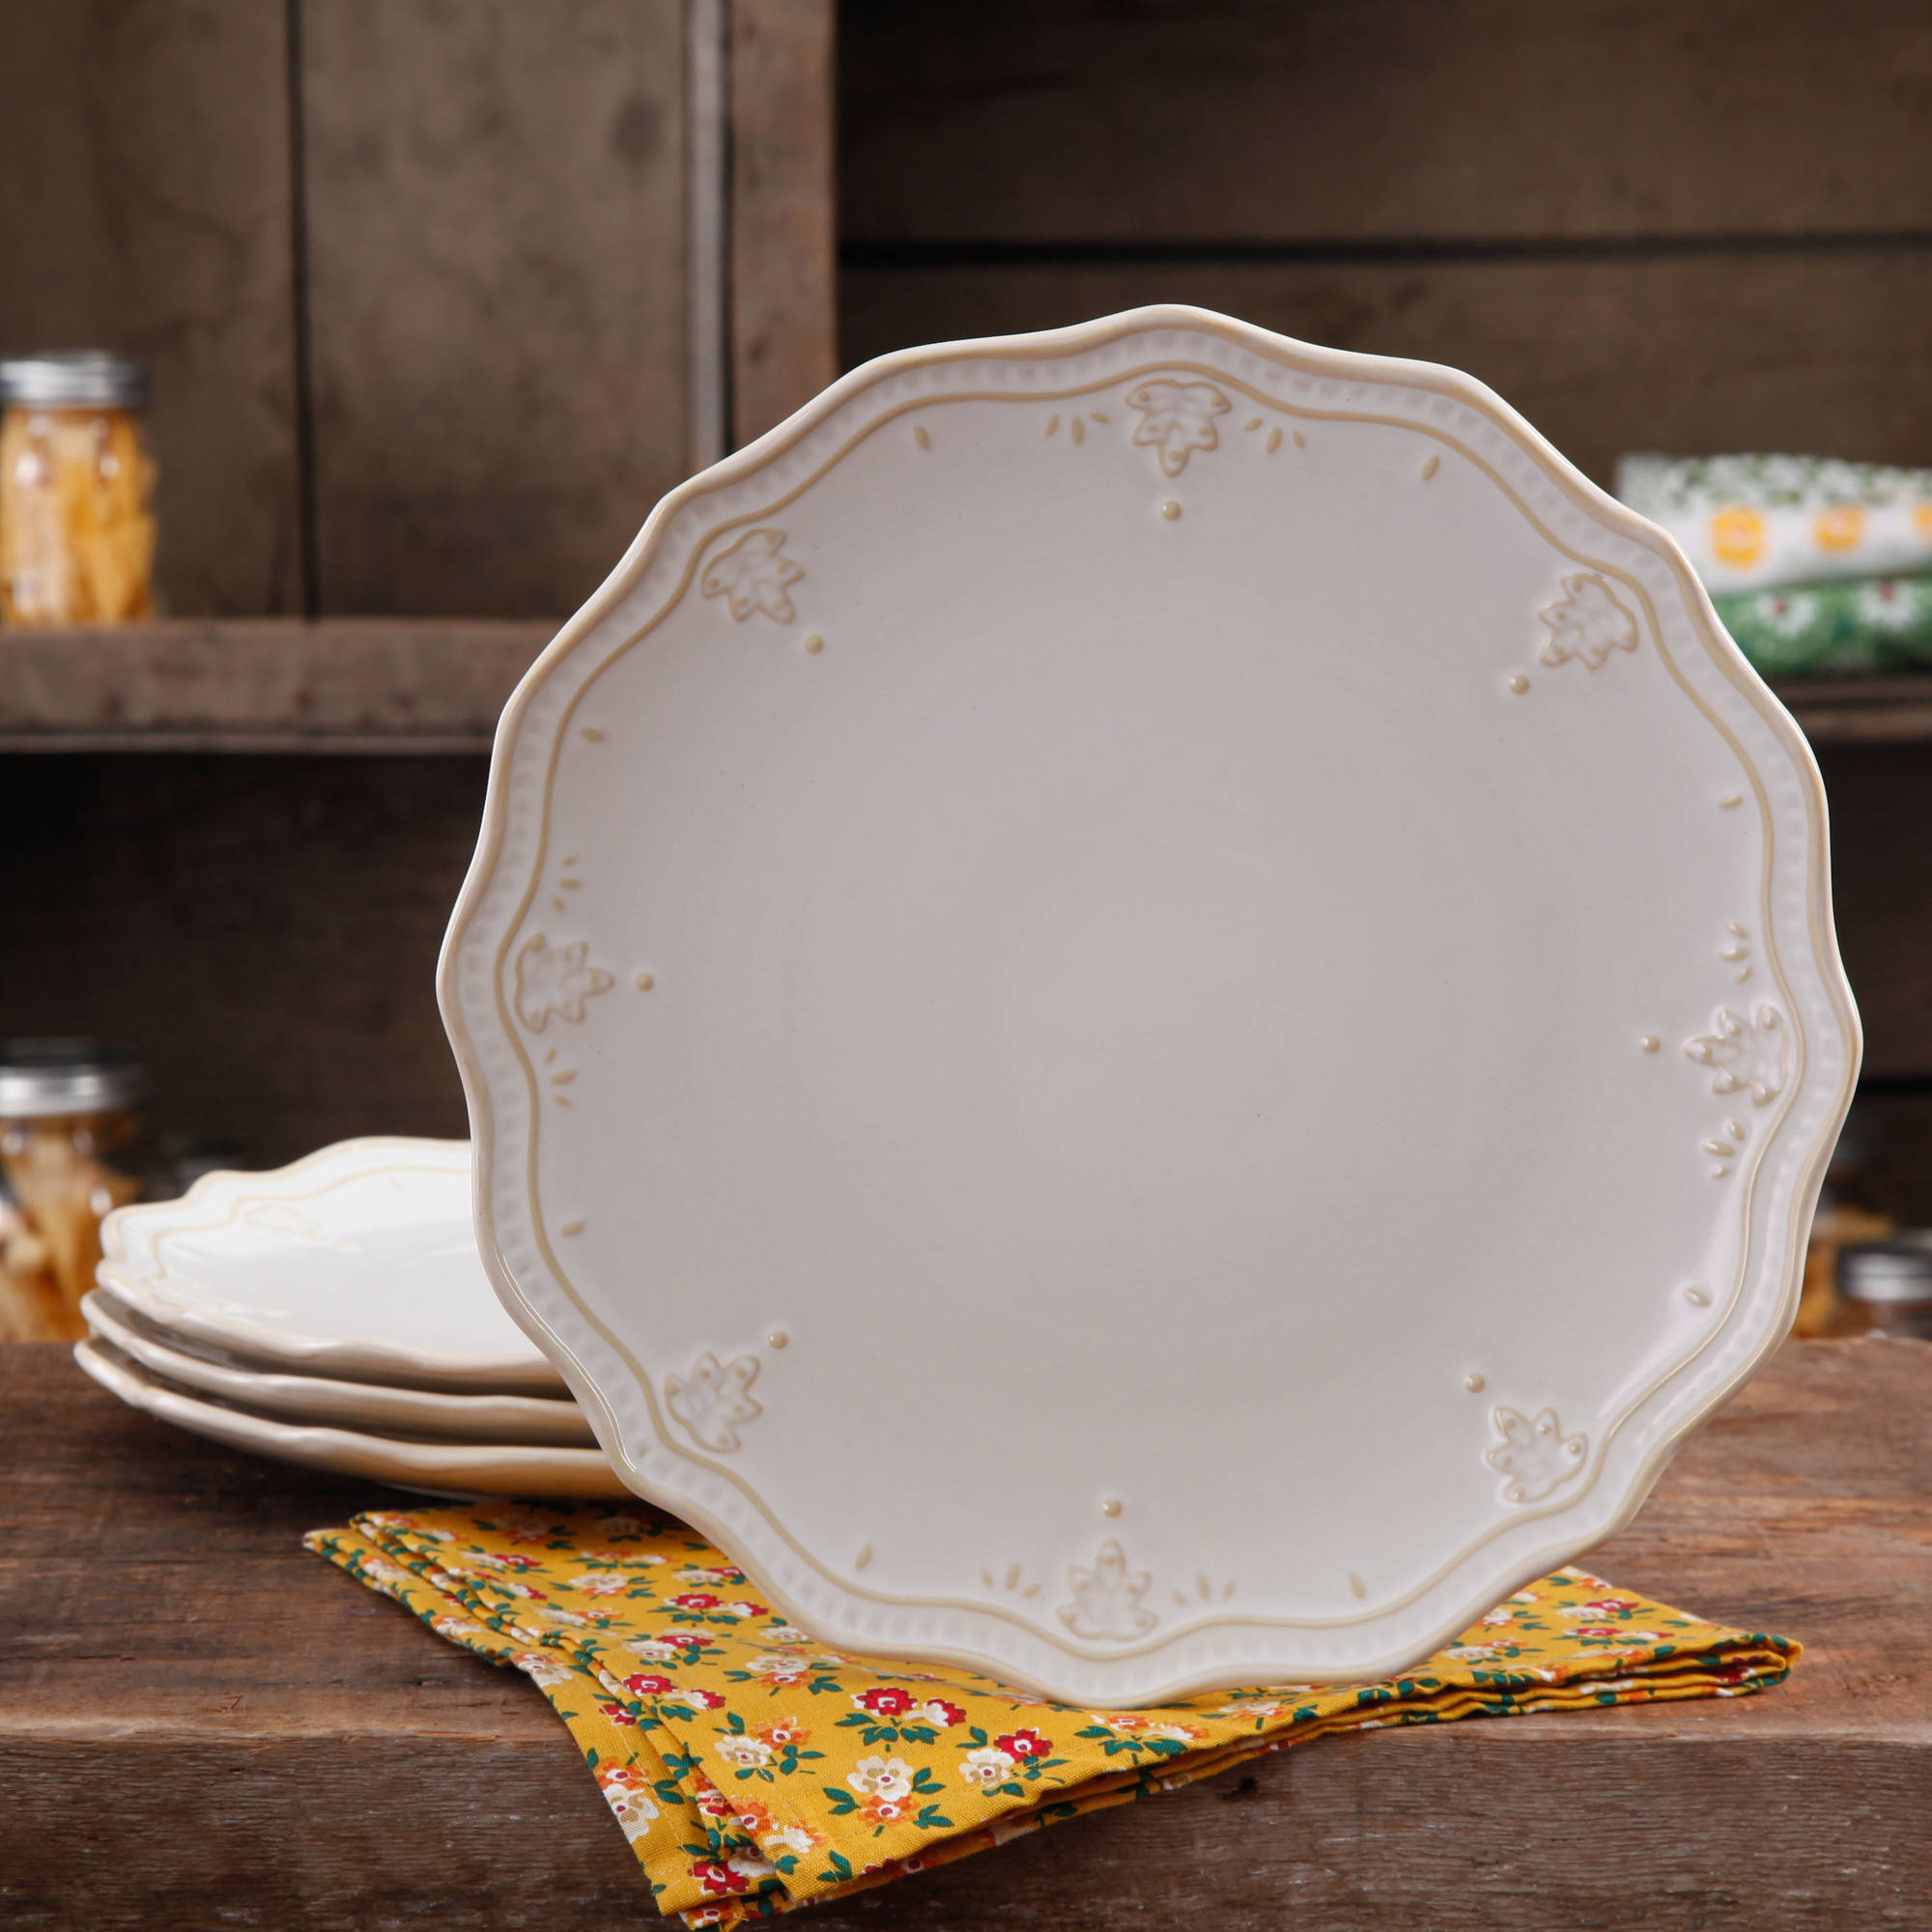 The Pioneer Woman Farmhouse Lace Dinner Plate Set 4 Pack